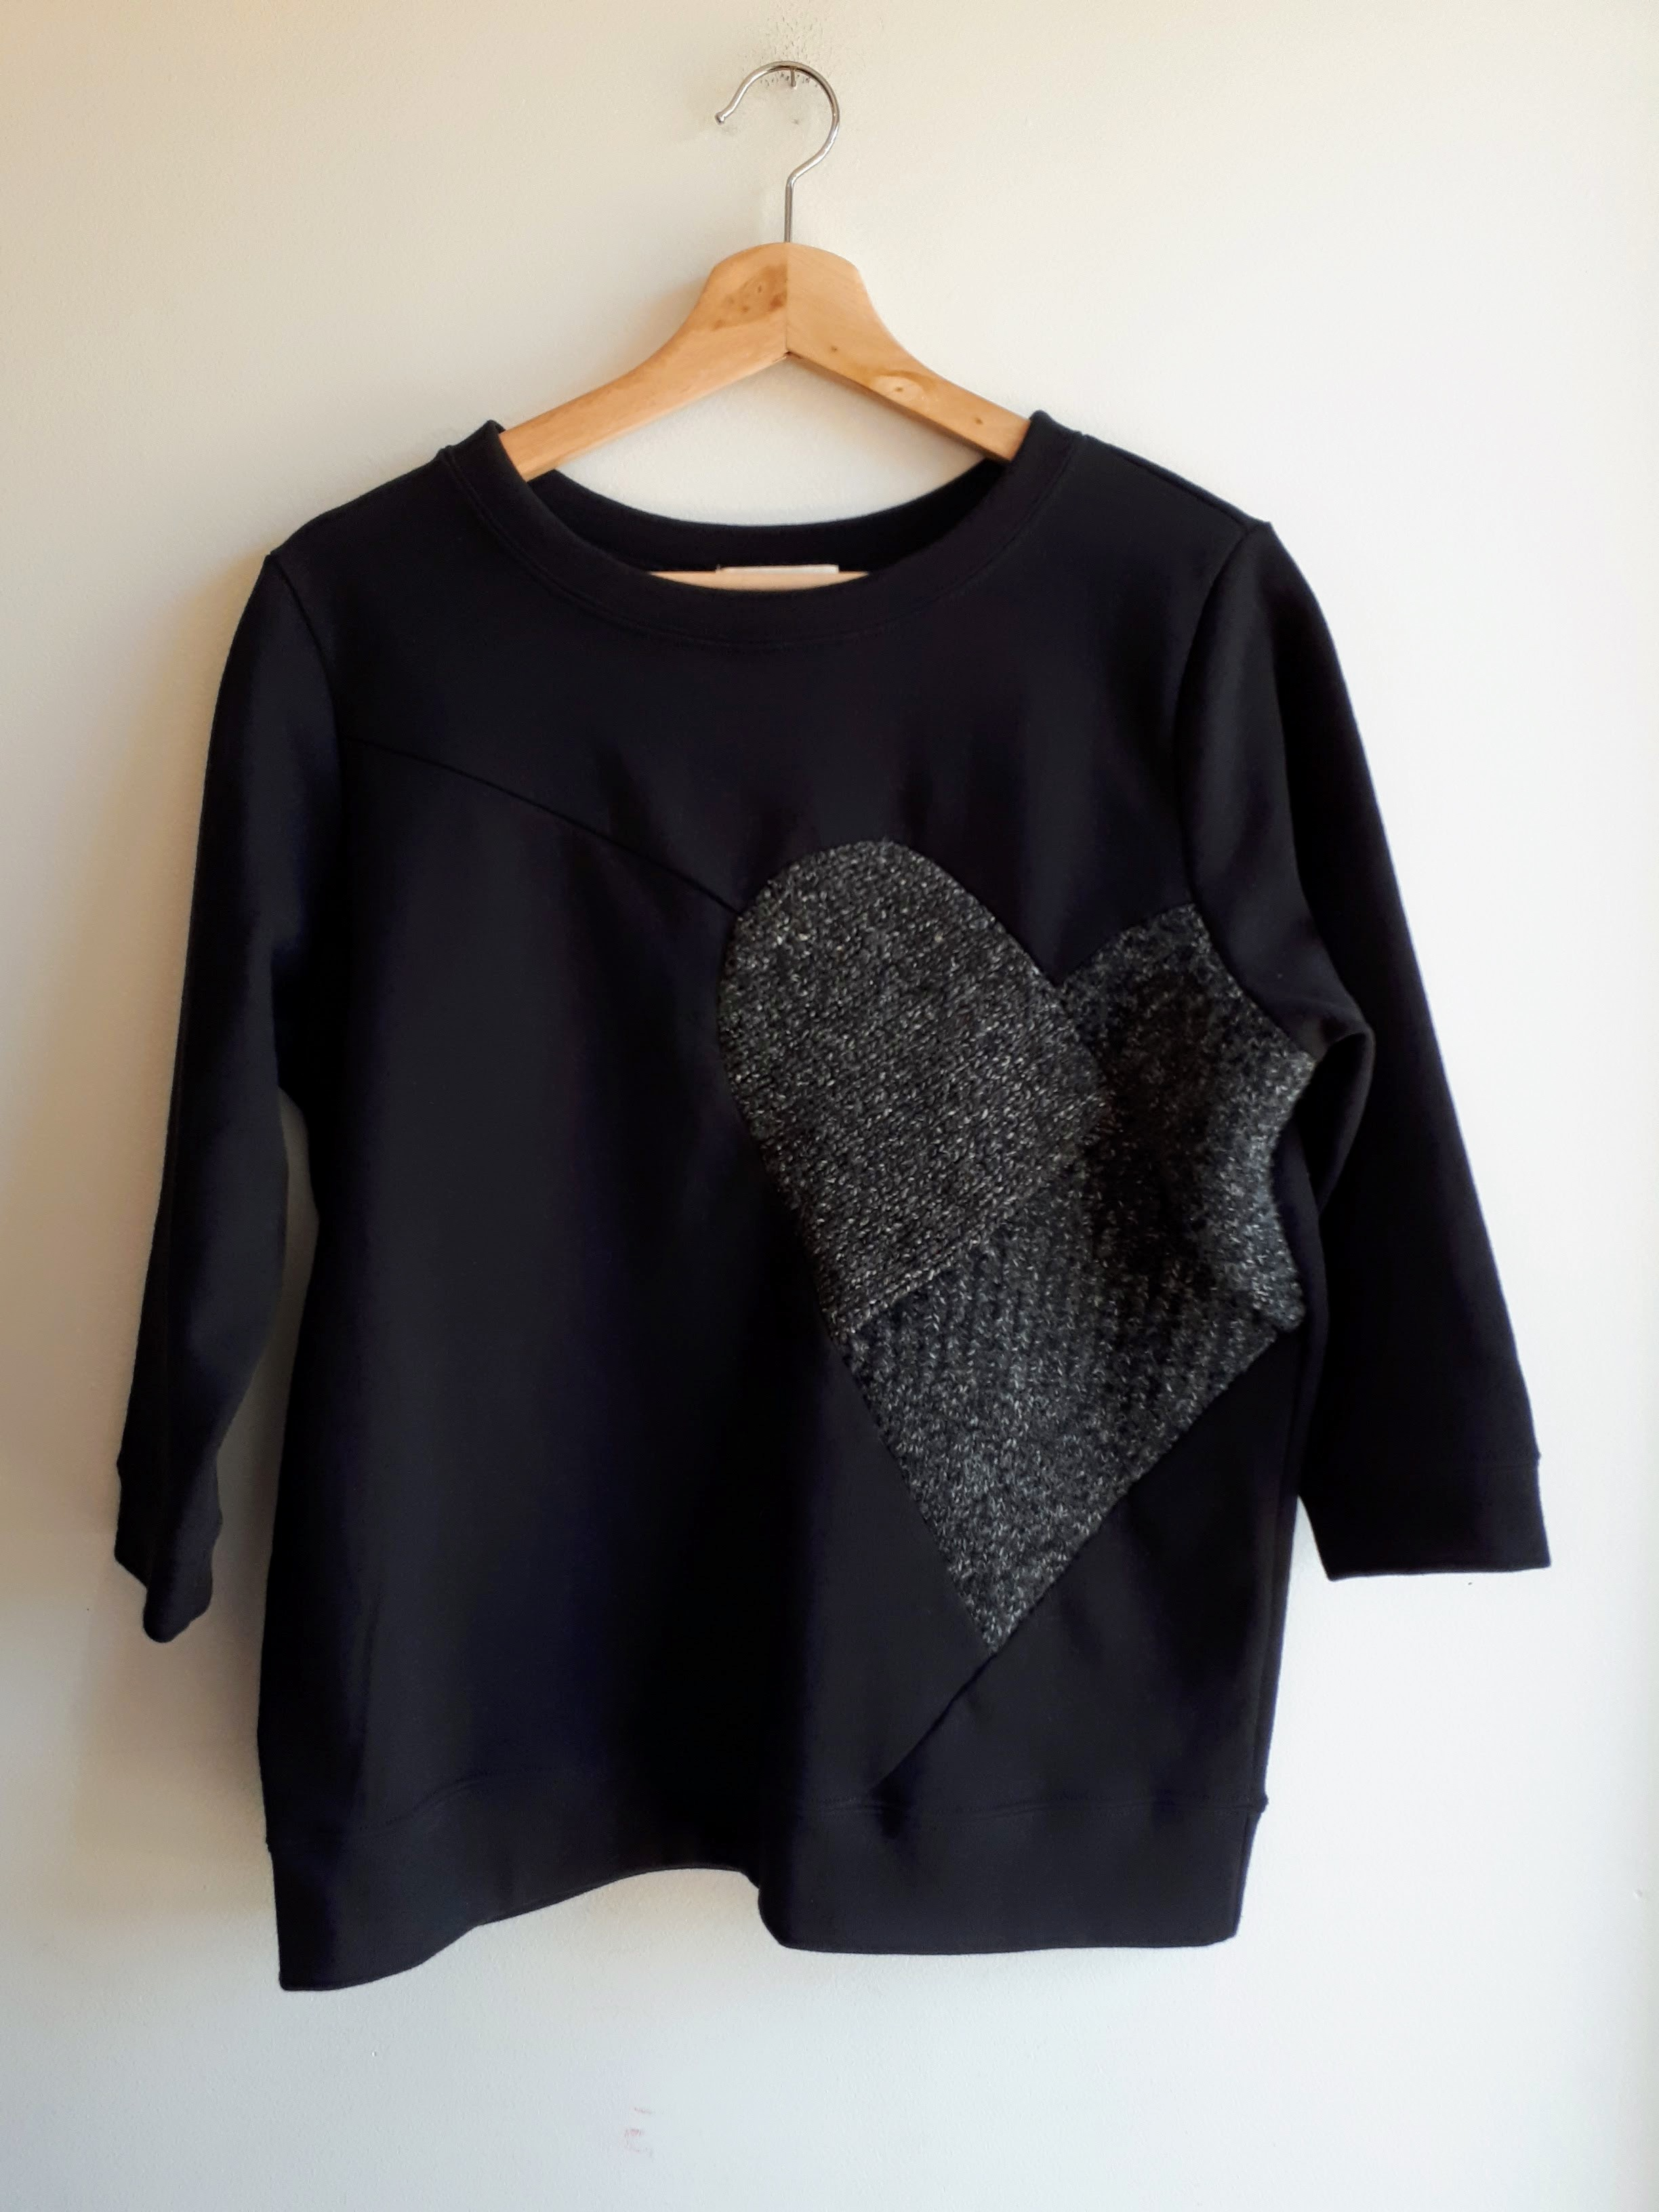 Pre Loved top; Size M, $34